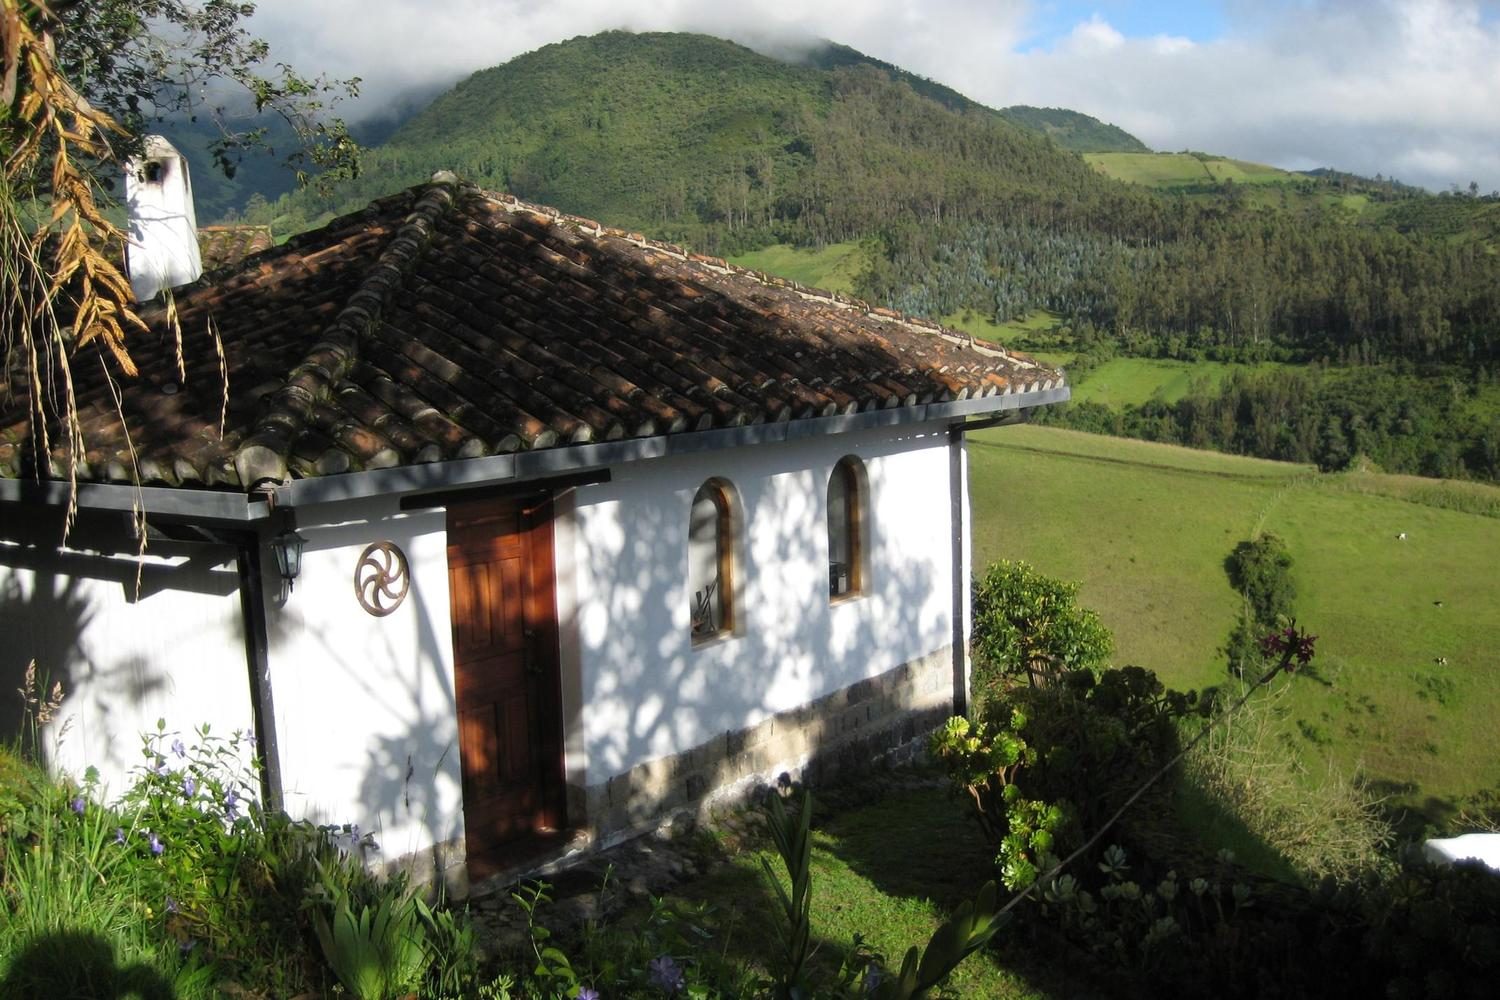 Looking out from Casa Mojanda in Ecuador's Imbabura area